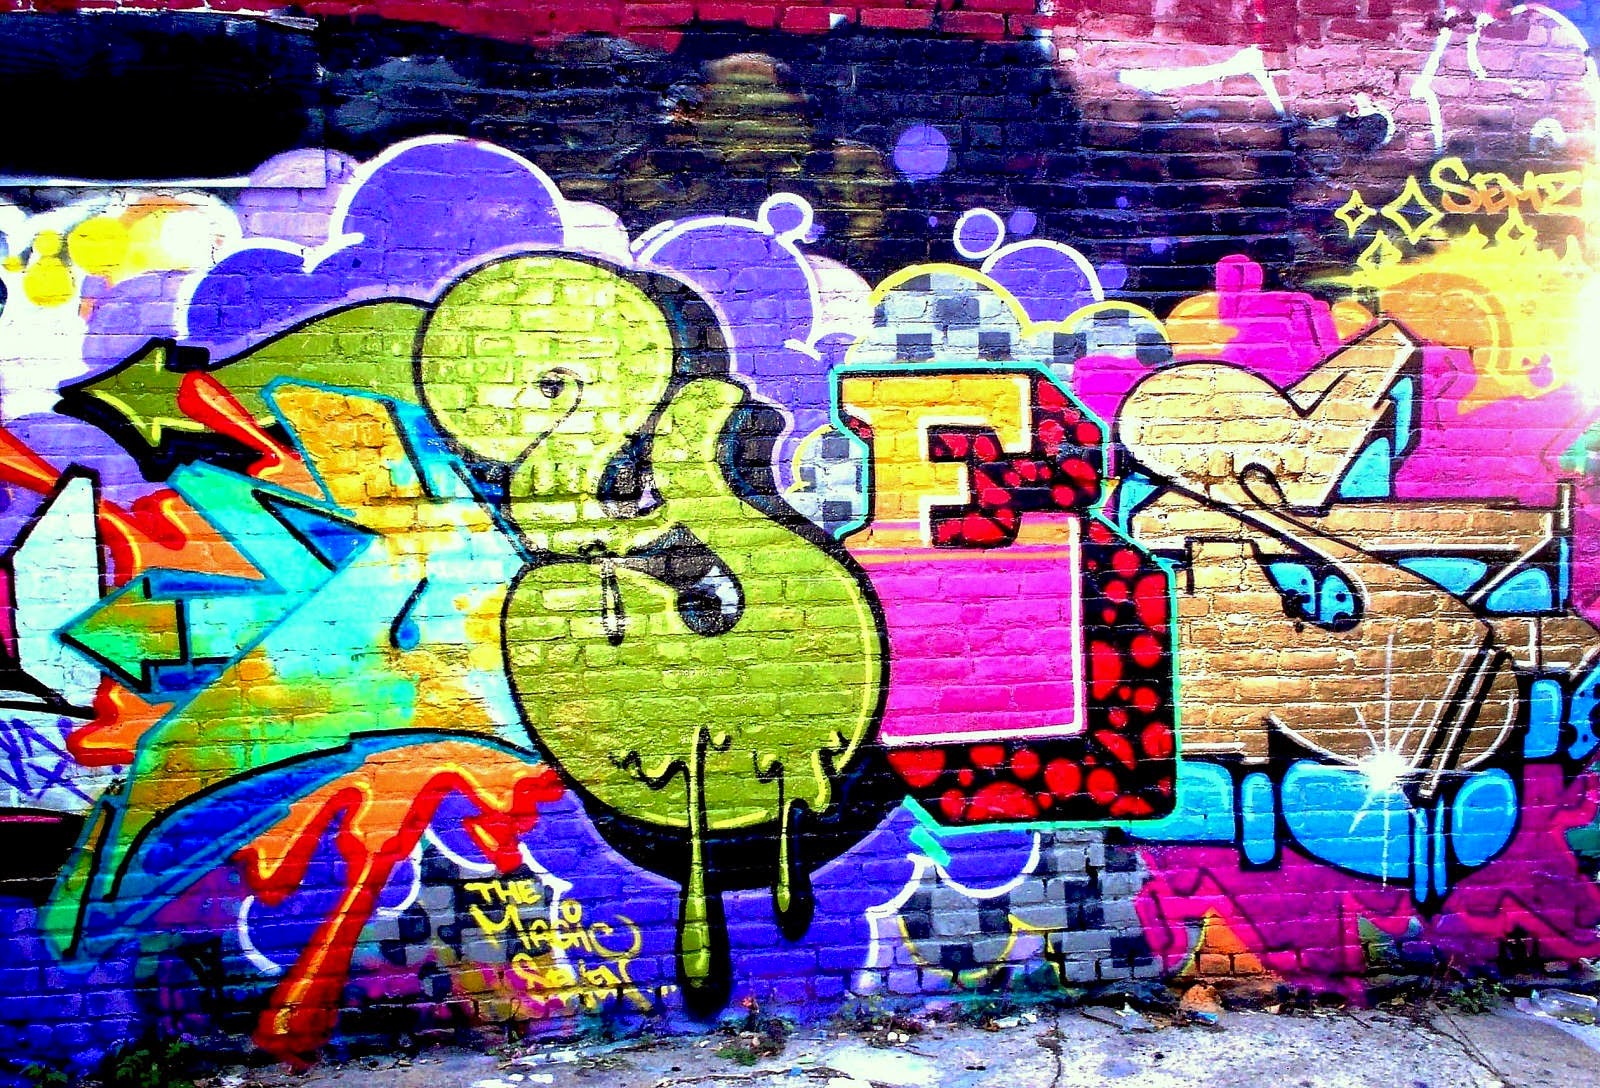 brick wall graffiti graffiti creator styles graffiti brick wall background 180